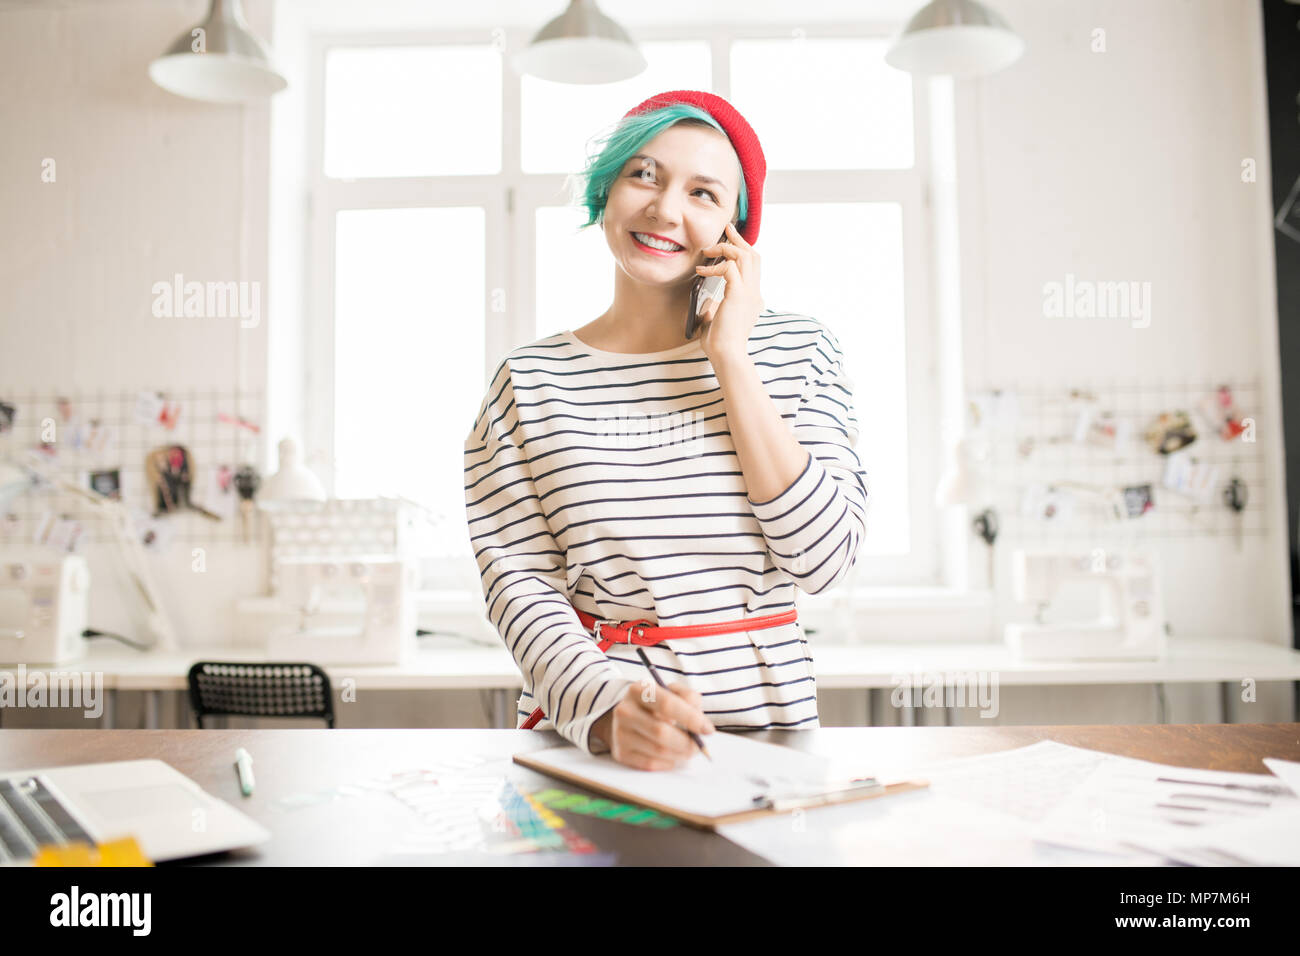 Trendy Female Manager Working in Atelier - Stock Image